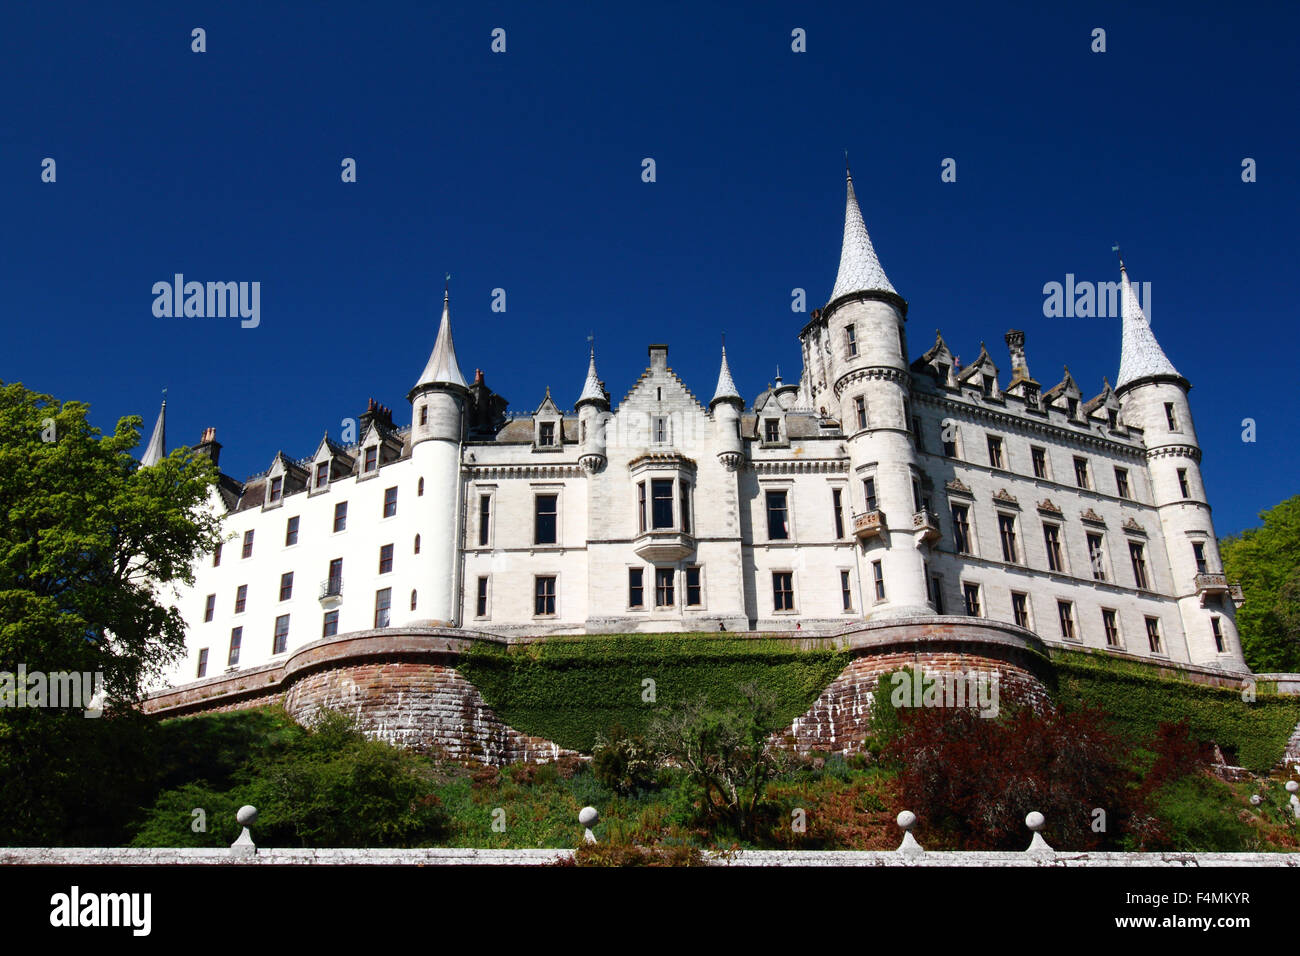 Dunrobin Castle, Golspie, Sutherland, Scotland on a sunny day with blue skies Stock Photo